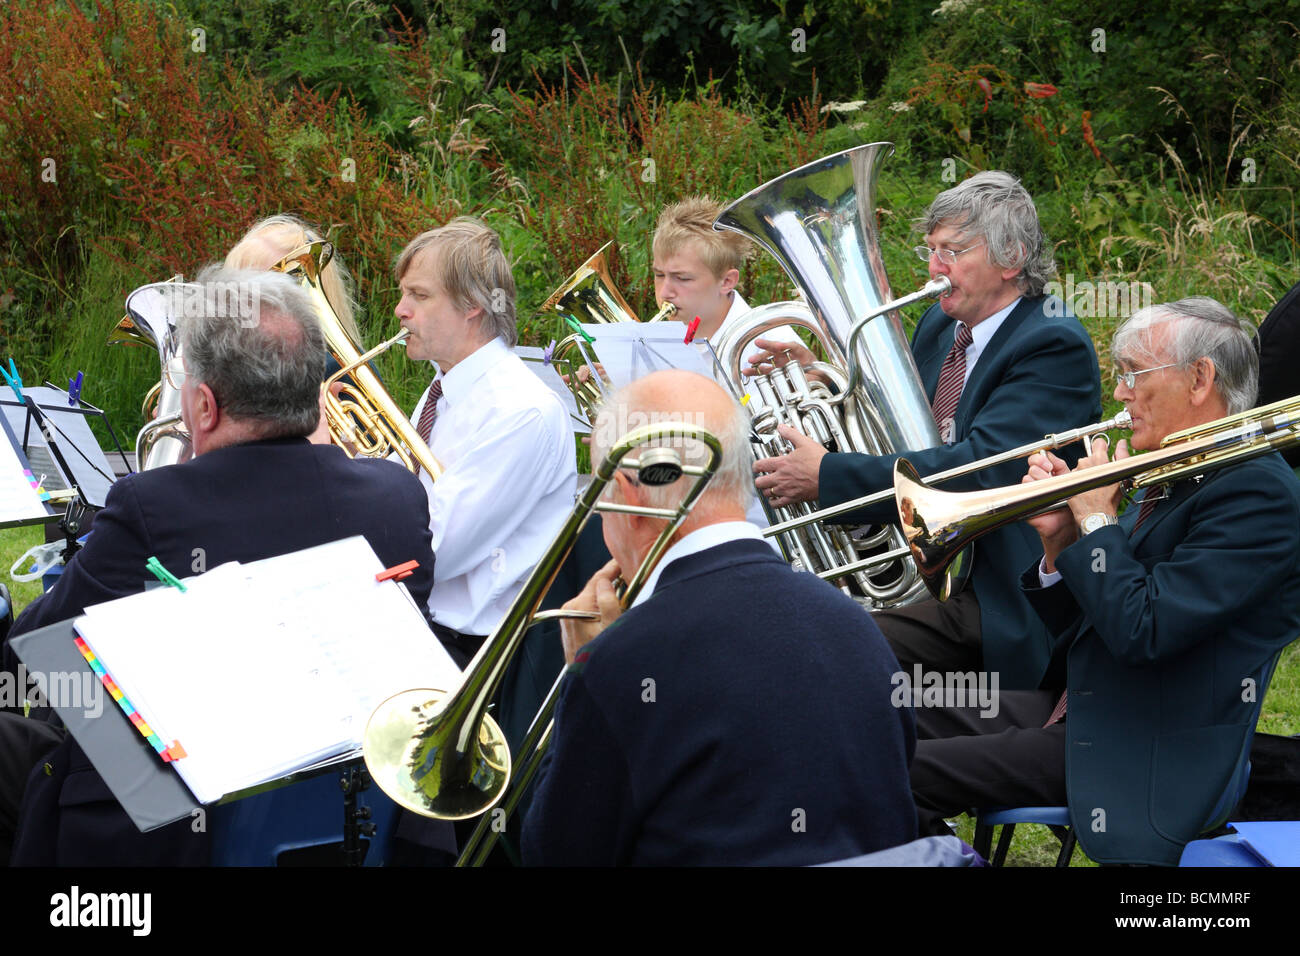 A brass band playing at an English village fete. - Stock Image